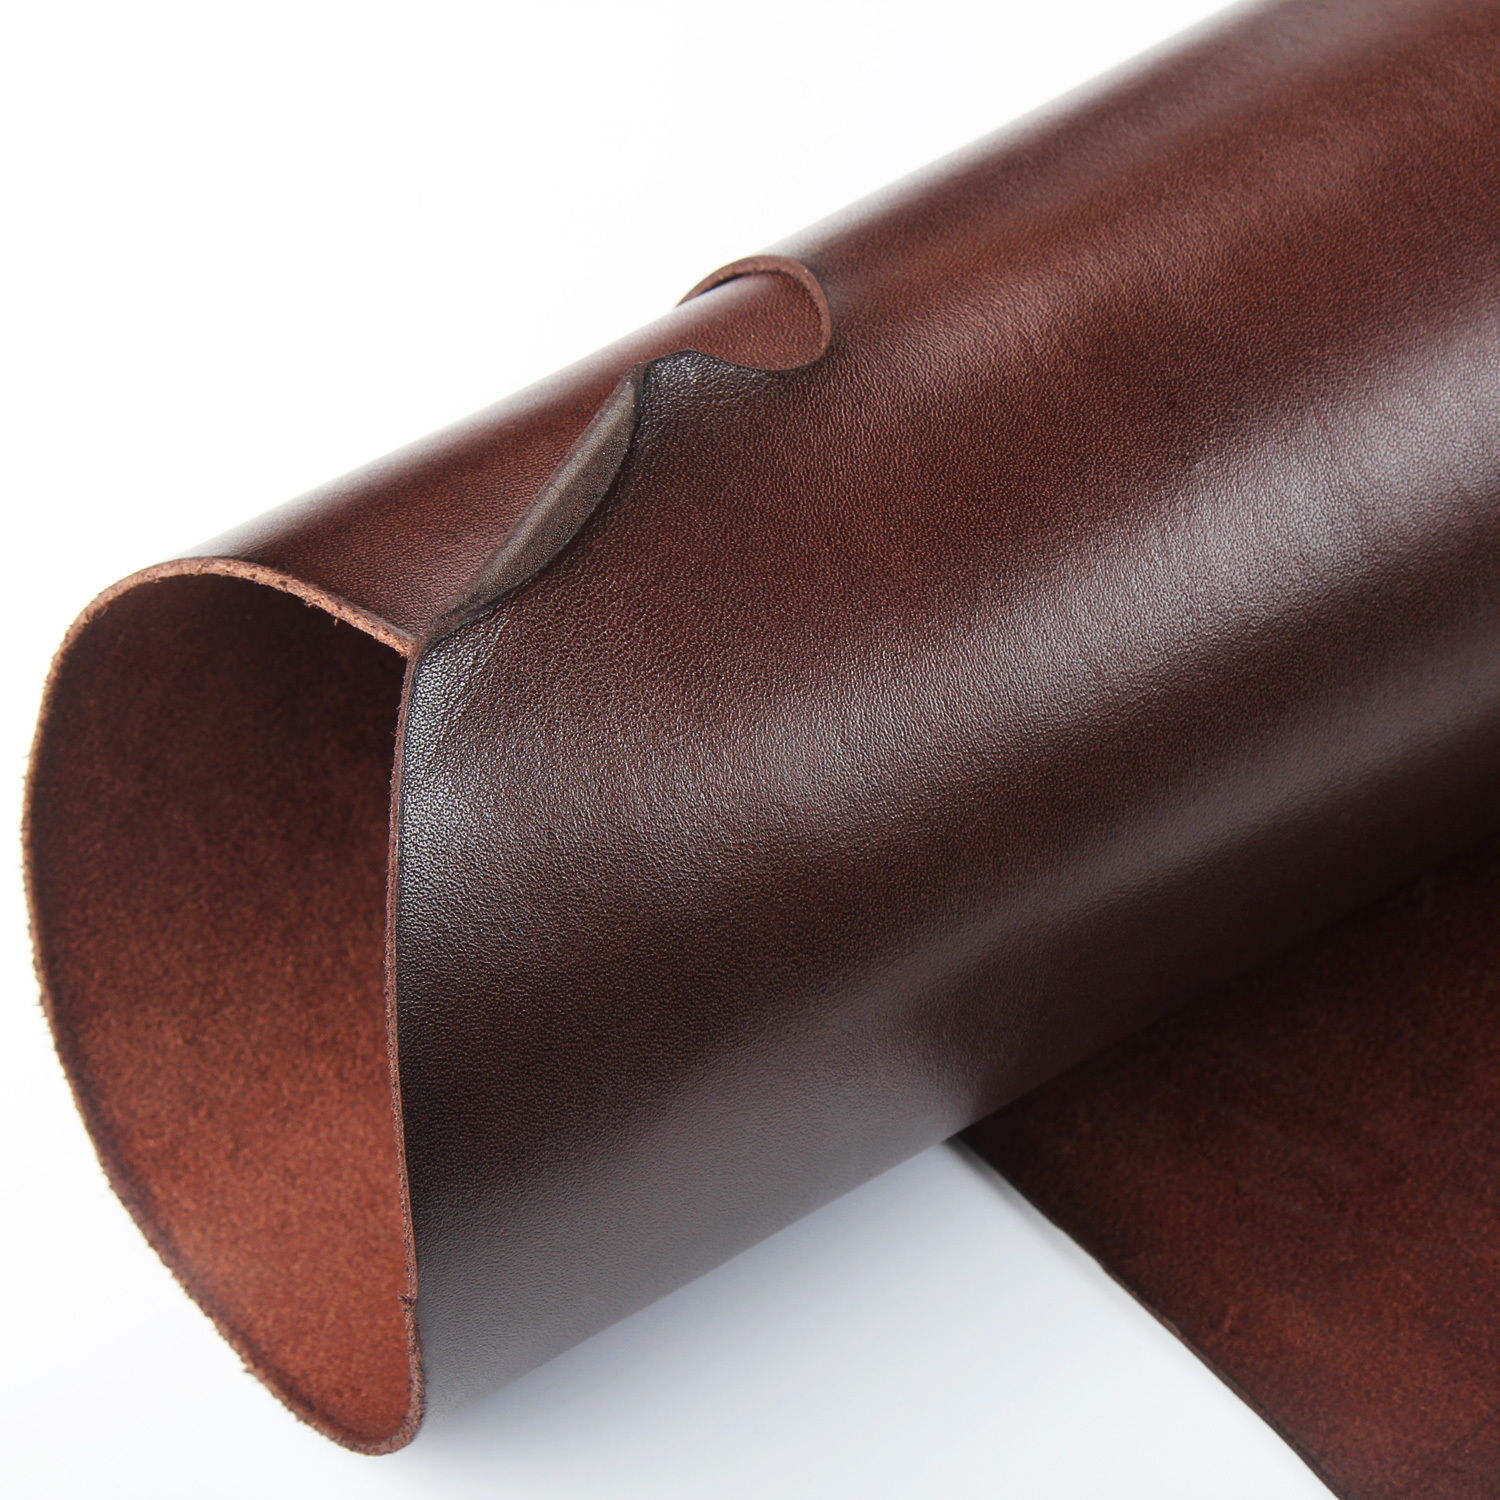 Buffalo Leather Finish 2,9 mm Thick A3 Cowhide Leather / Special quality by TAIDOC